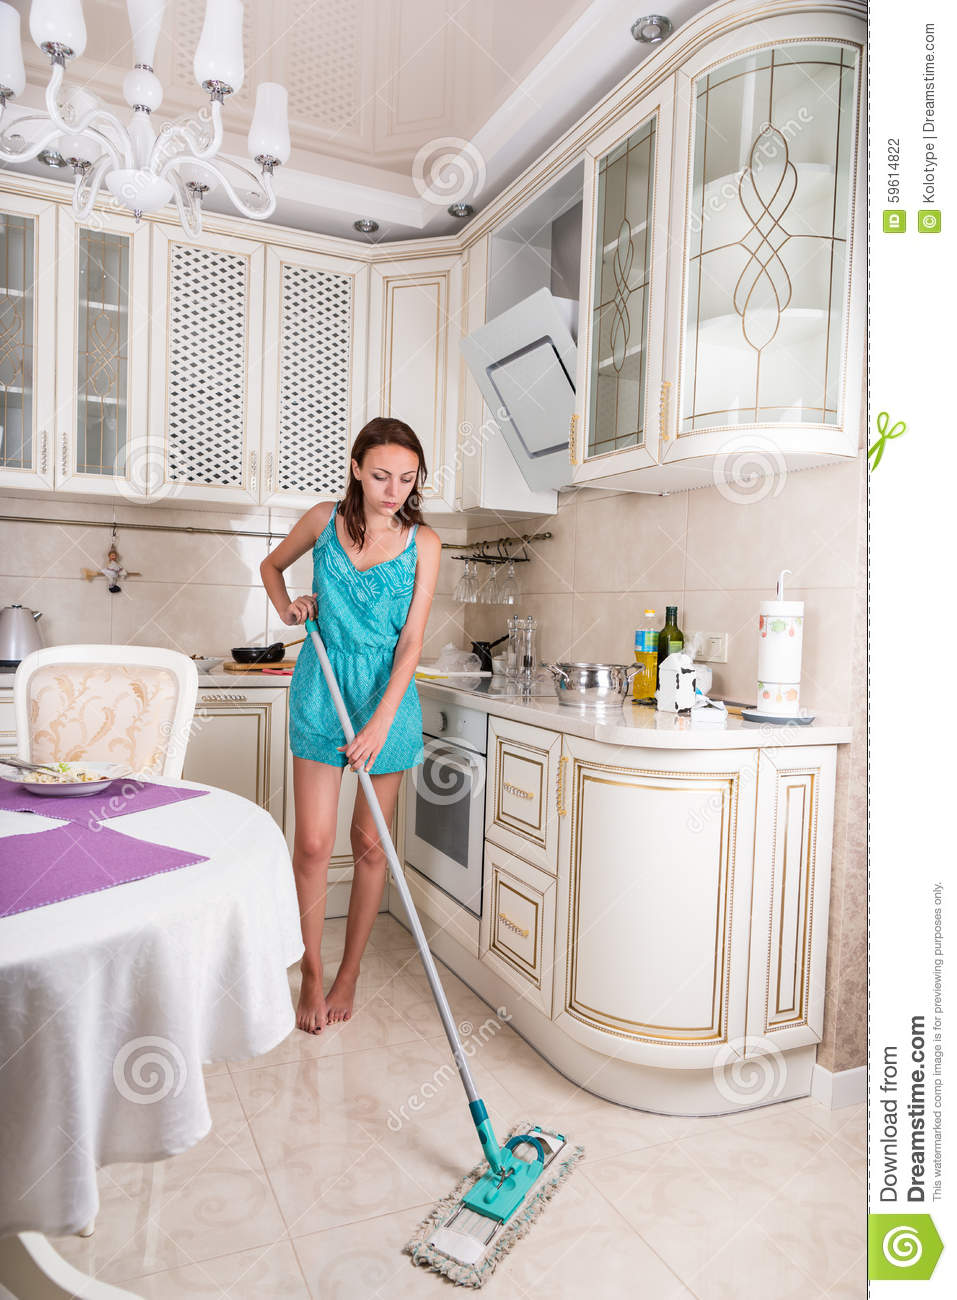 Mopping Kitchen Floor Barefoot Young Woman Mopping The Floor Stock Photo Image 59614822